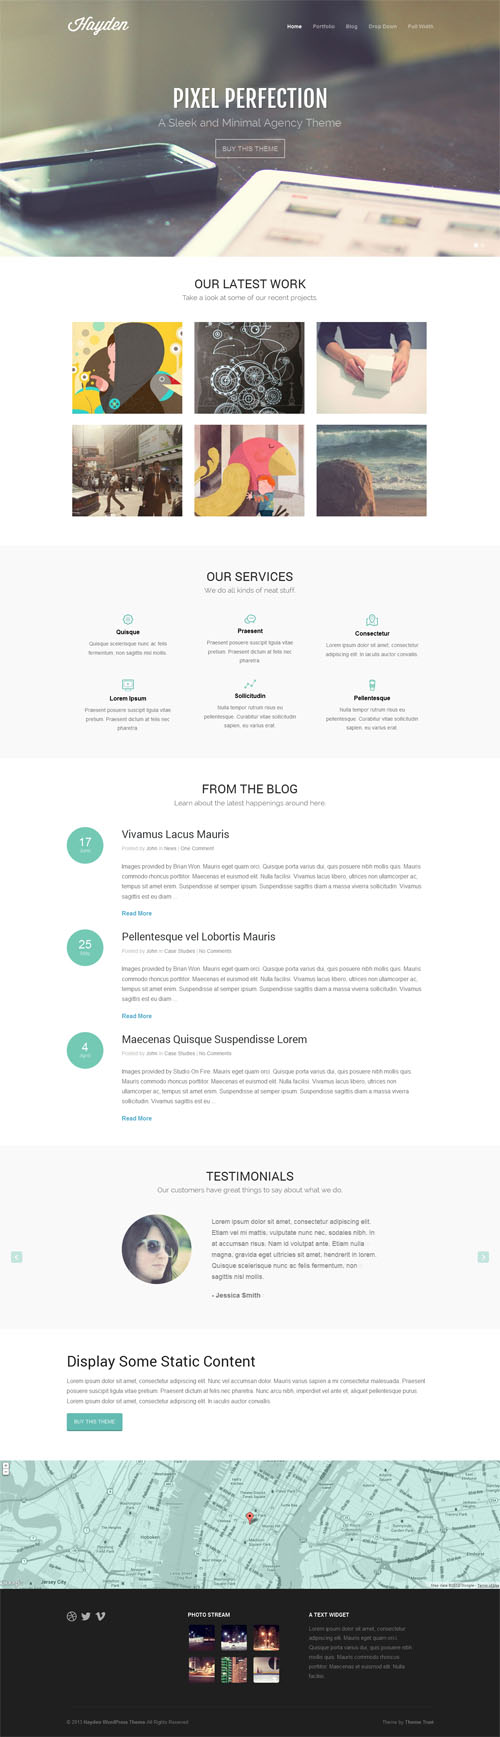 hayden Professional Agency WordPress Theme